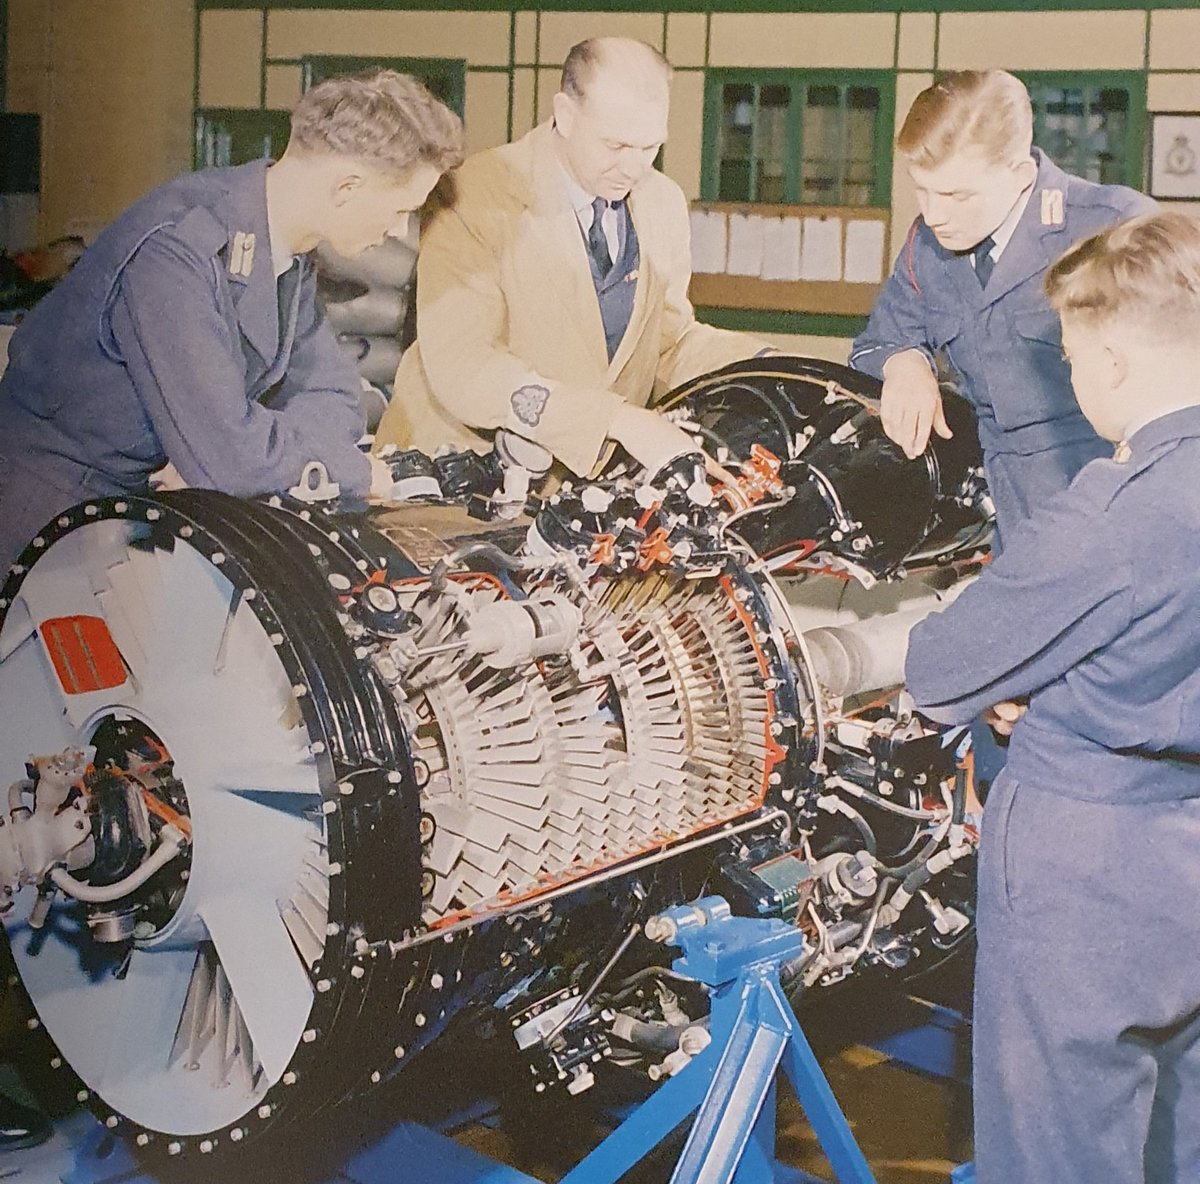 I love finding old photos of, or similar to, exhibits we've got at the museum. These technical cadets at Henlow around 1960 are being instructed on a cut-away Rolls-Royce Avon engine similar to the one we restored last year (image credit: RAF). #aviation #avgeek #coldwar #museumpic.twitter.com/GuCDQwcMq1